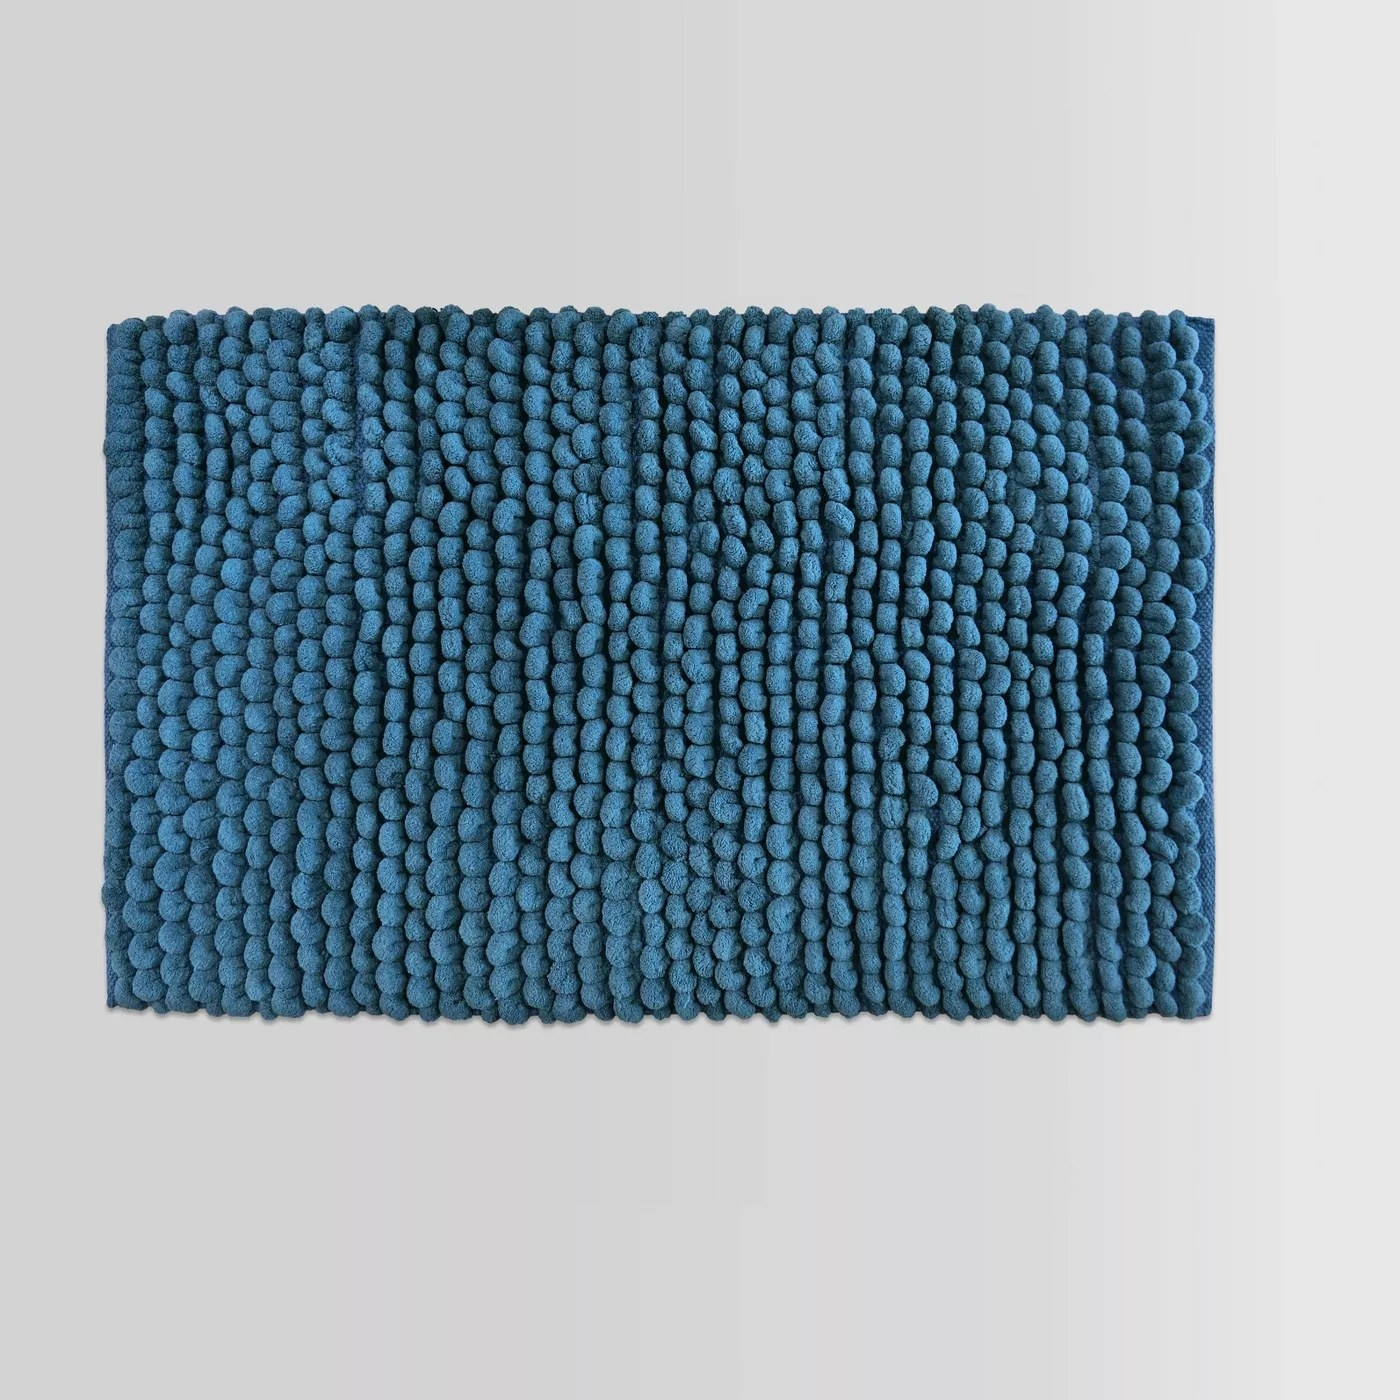 The blue, textured bath rug